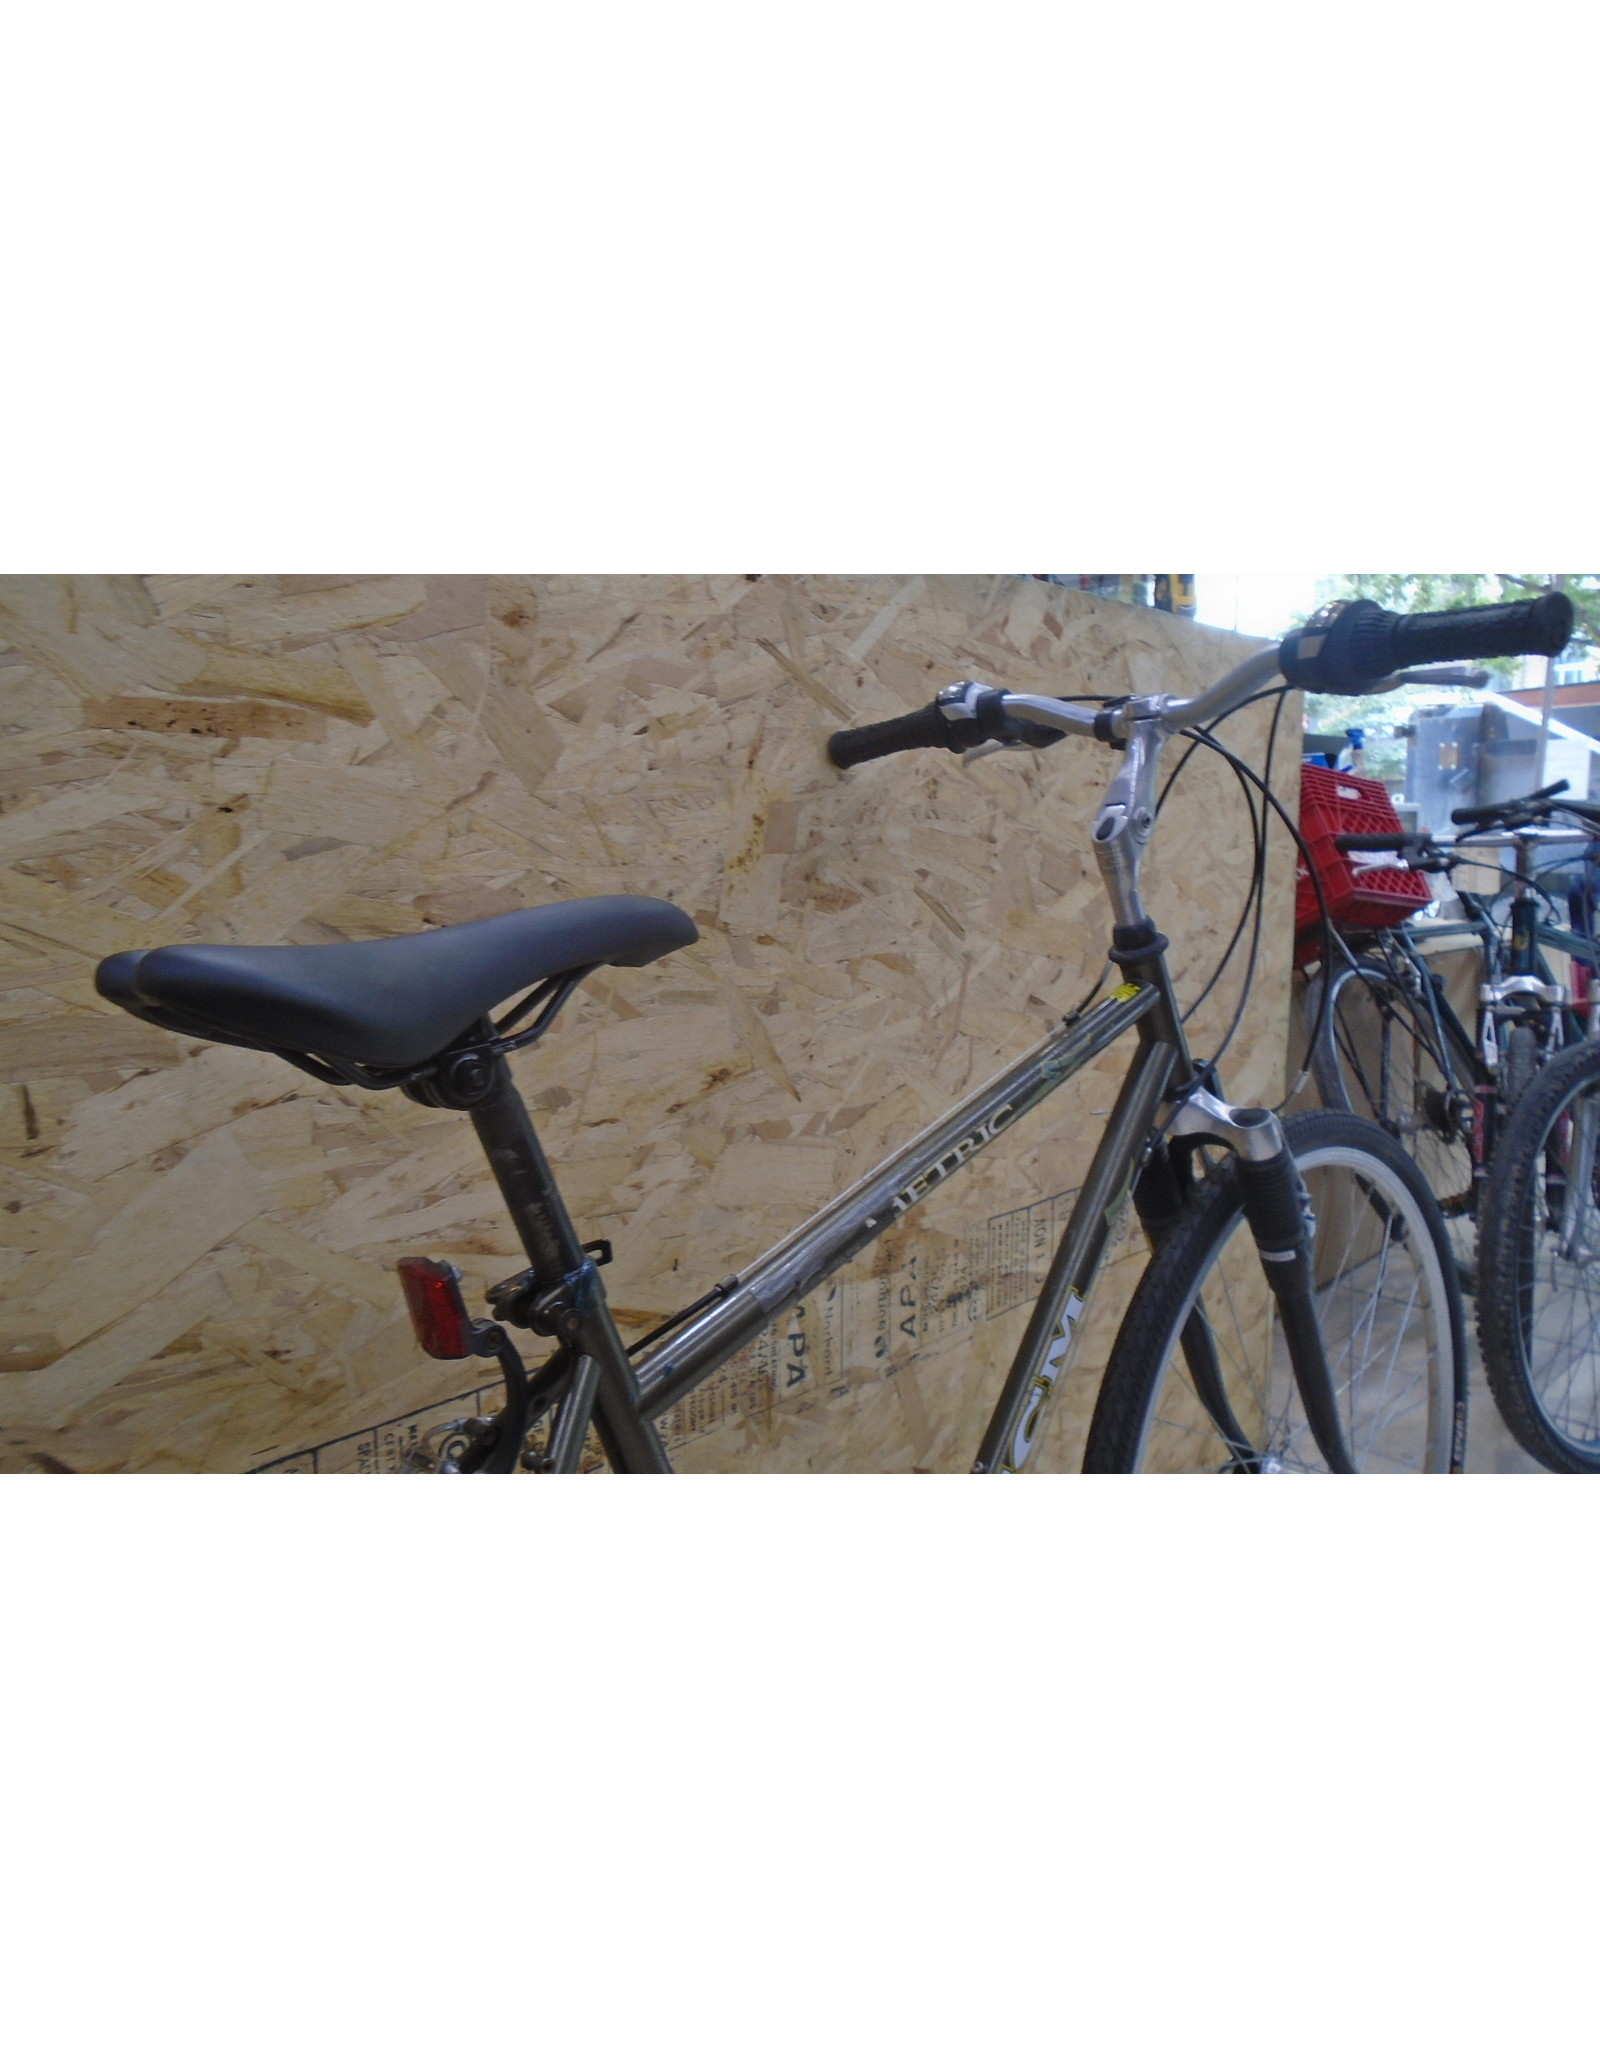 "CCM 18 ""Hybrid Used Bike - 9999"